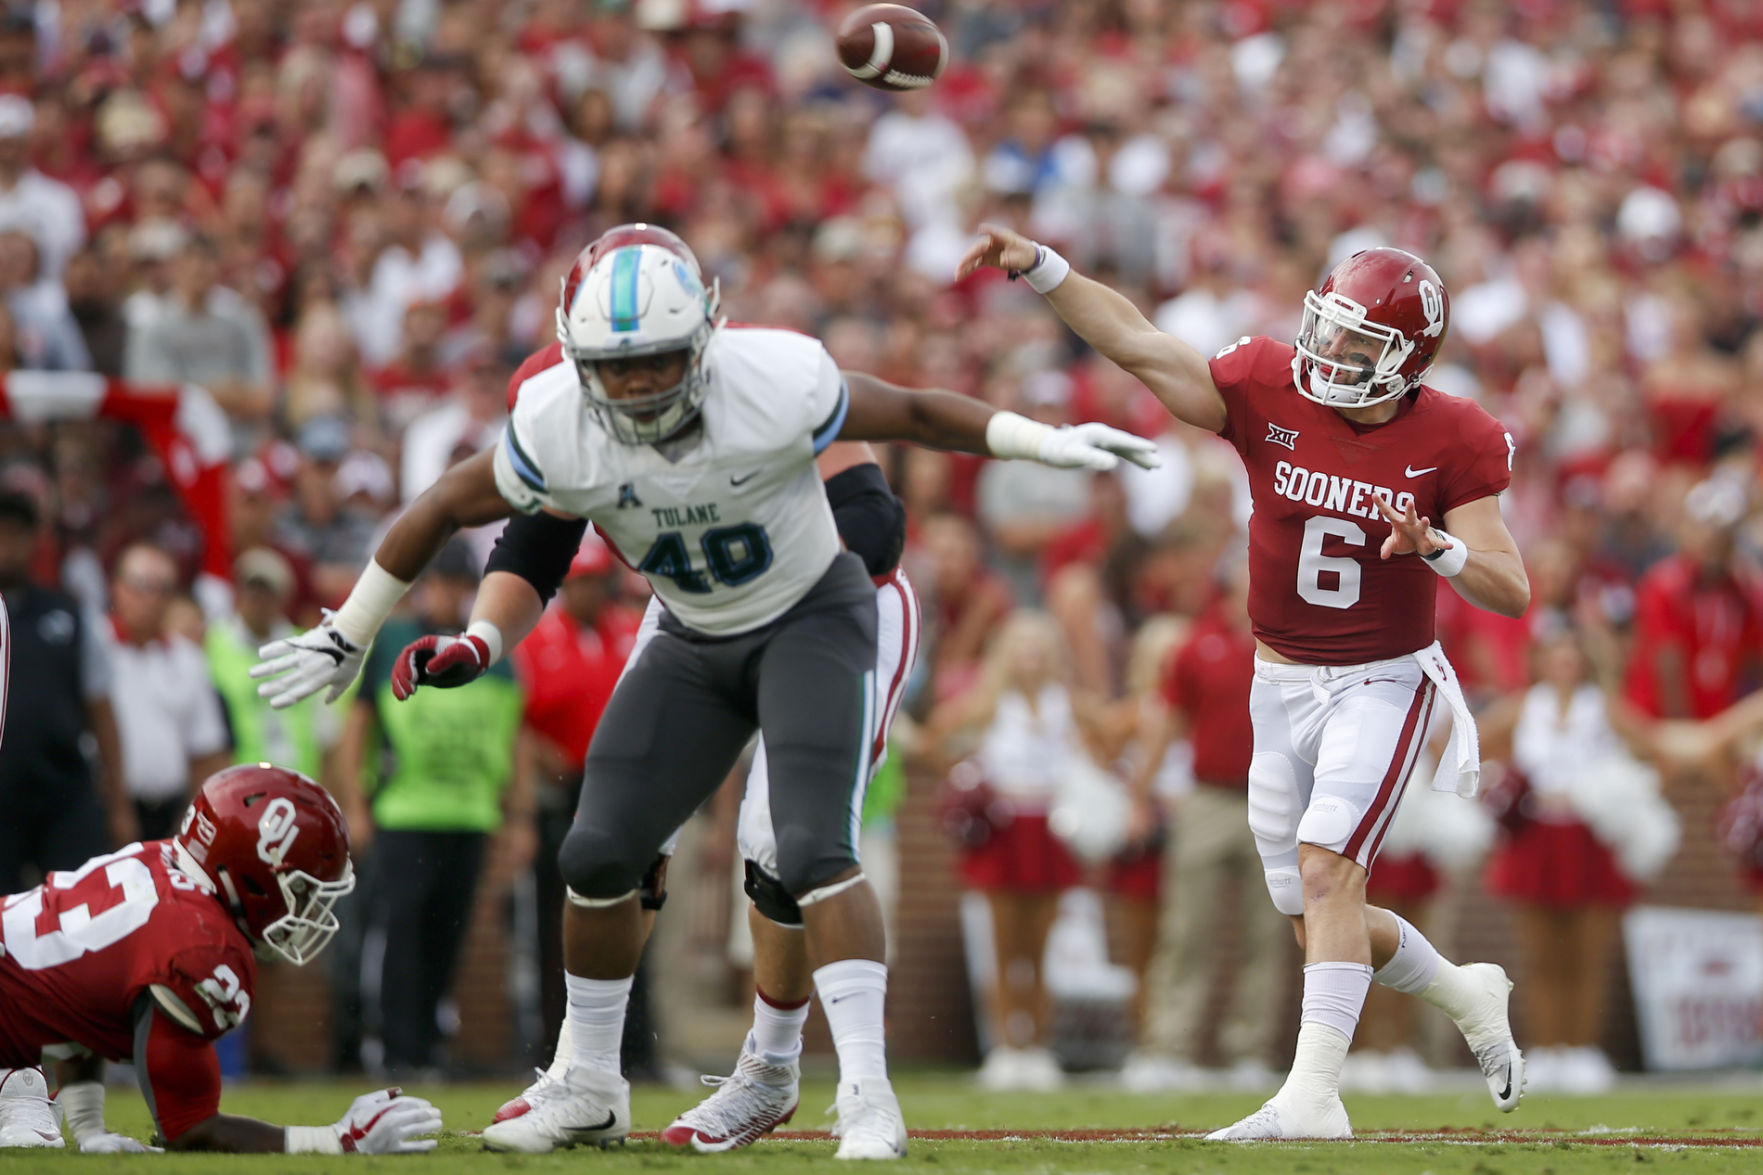 Oklahoma overcomes slow start in 56-14 win over Tulane